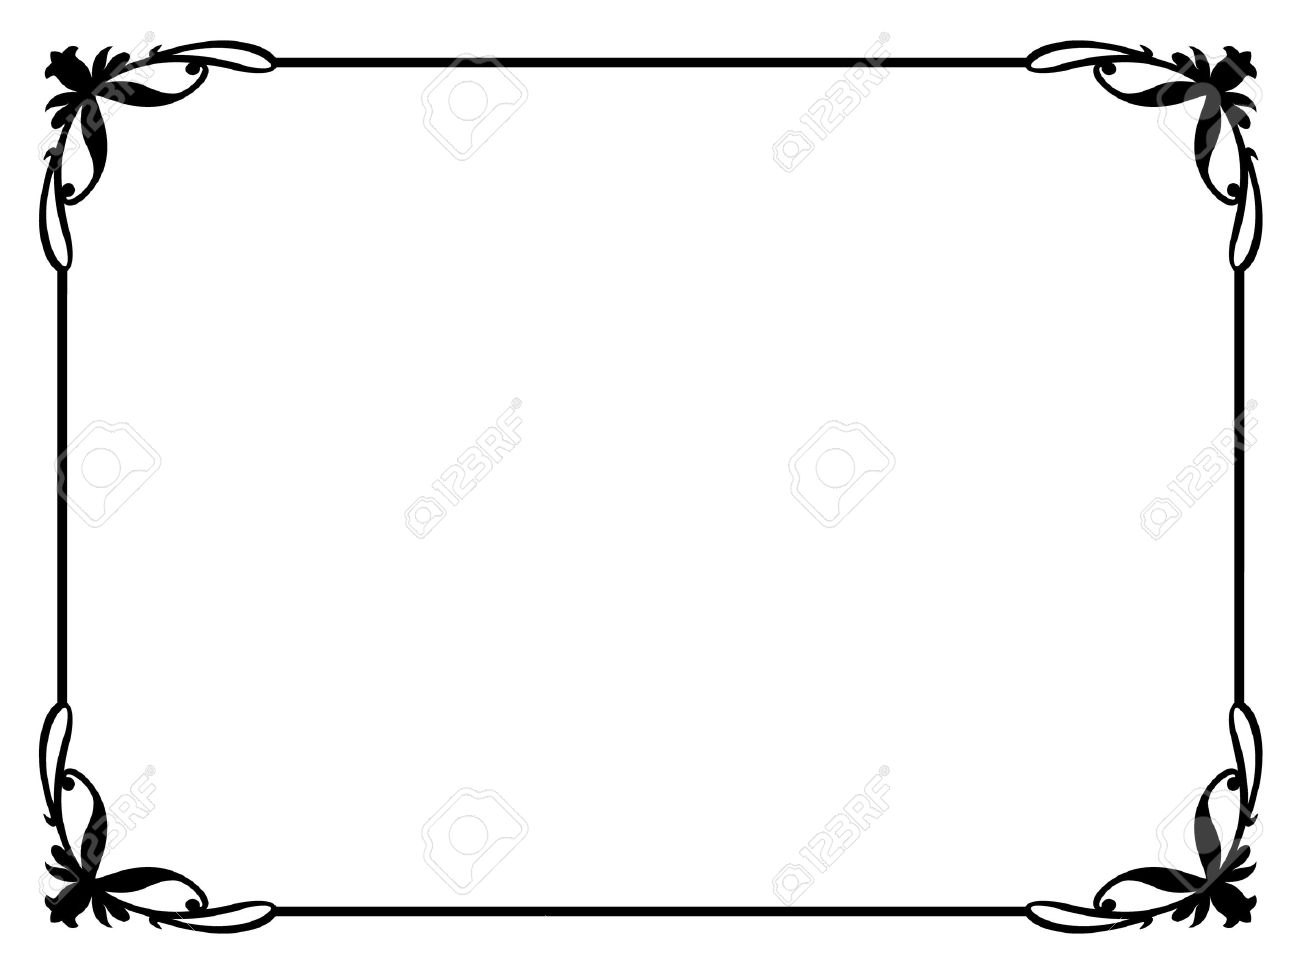 Simple Calligraphy Ornamental Decorative Frame Pattern Royalty.